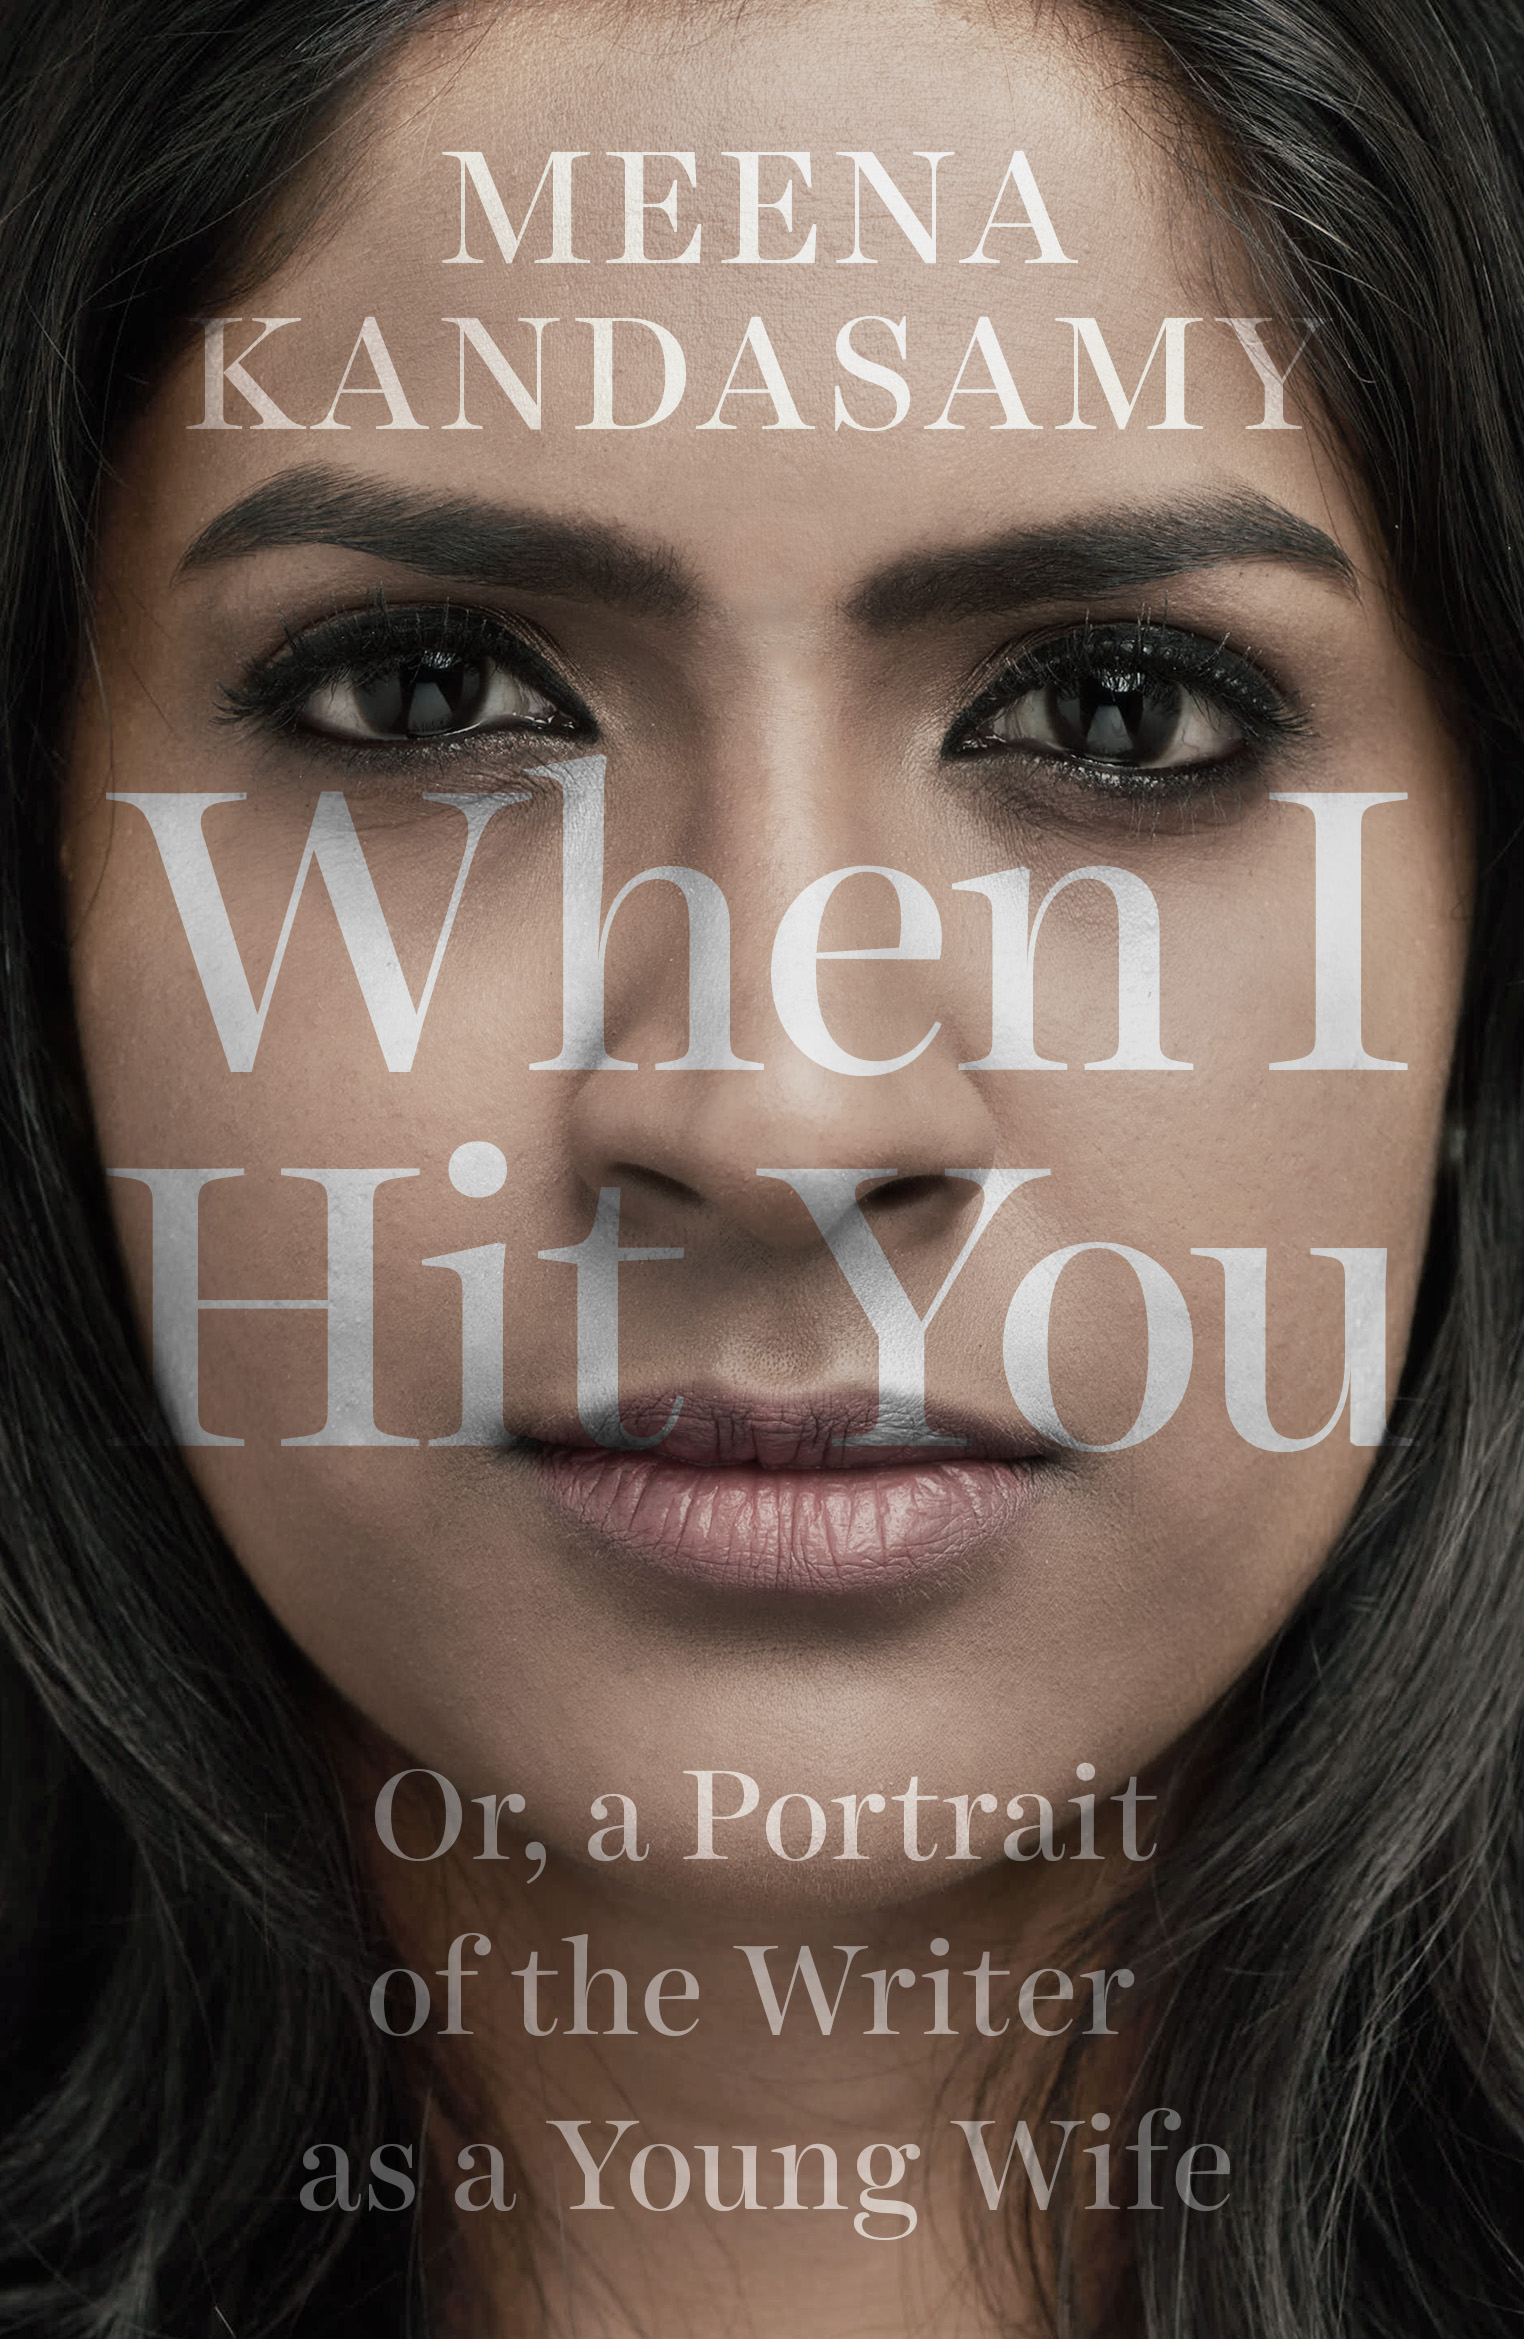 Meena Kandasamy <em>When I Hit You: Or, a Portrait of the Writer as a Young Wife</em> Juggernaut, 2017